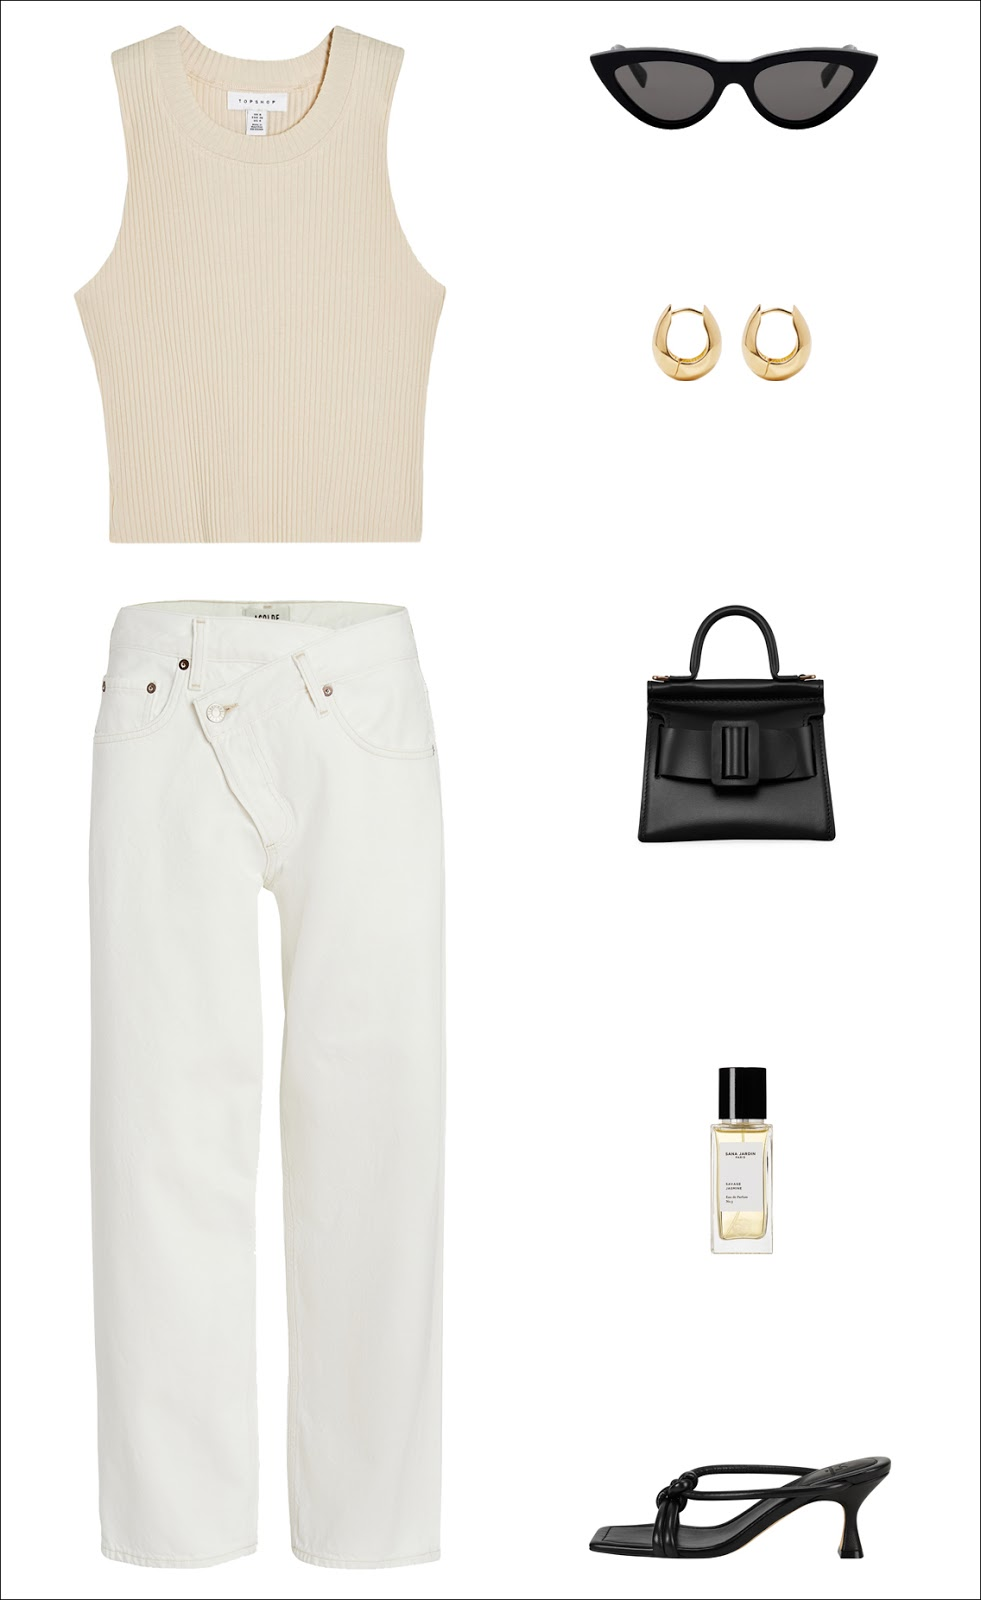 Stylish Way to Wear White Jeans for Summer —black cat-eye sunglasses, a beige tank top, yellow-gold hoop earrings, a cool black mini bag, white straight-leg jeans, and strappy black mule heels